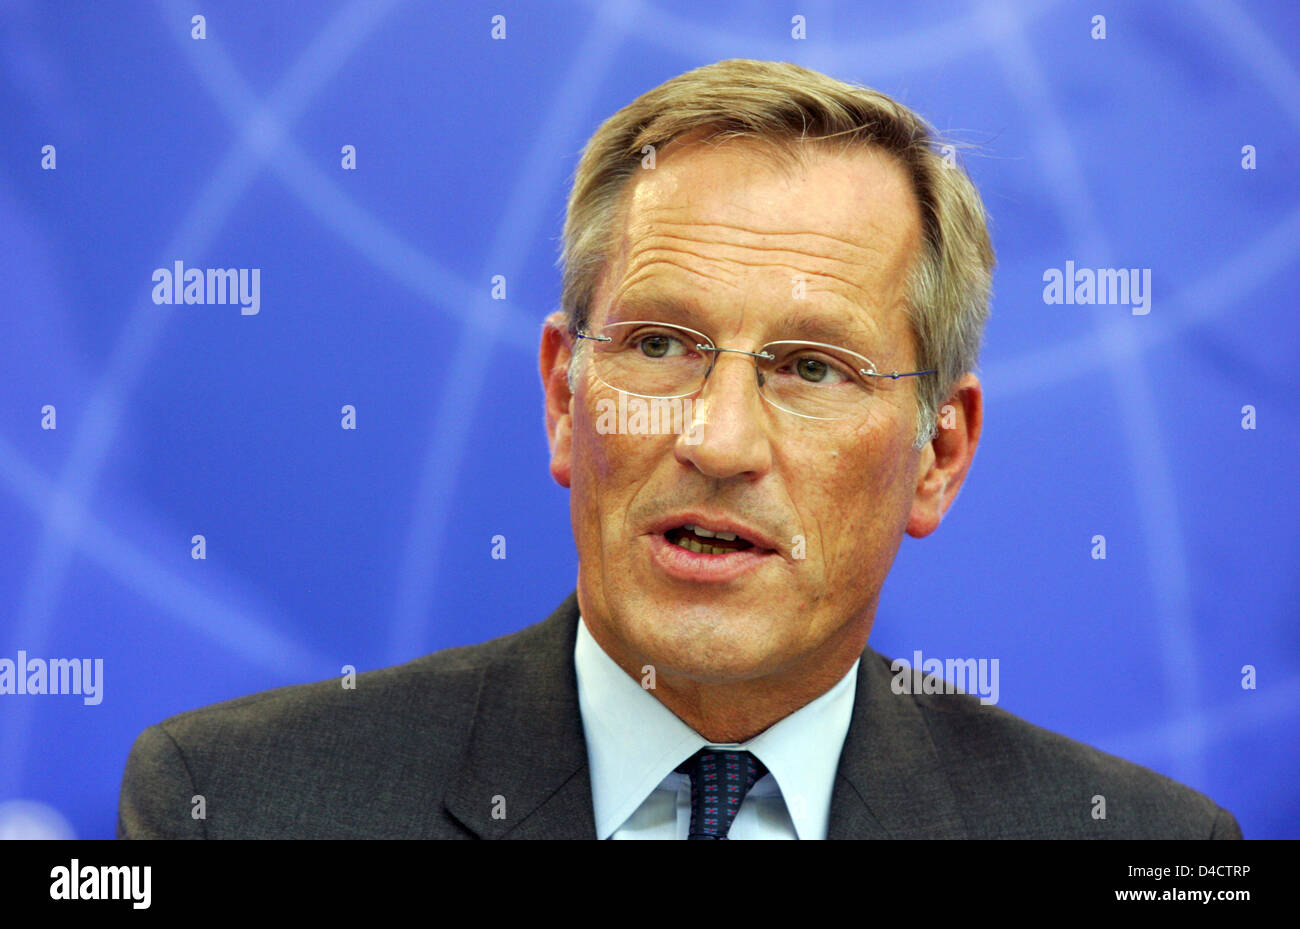 Allianz SE CEO Michael Diekmann pictured during the group's balance press conference in Munich, Germany, 21 February 2008. Europe's biggest insurer Allianz prefers to be cautious for the coming financial year despite booking a record profit in the past year with its economic turmoils on the financial markets. Having to absorb billions of charges in the course of crisis-hit US housi Stock Photo